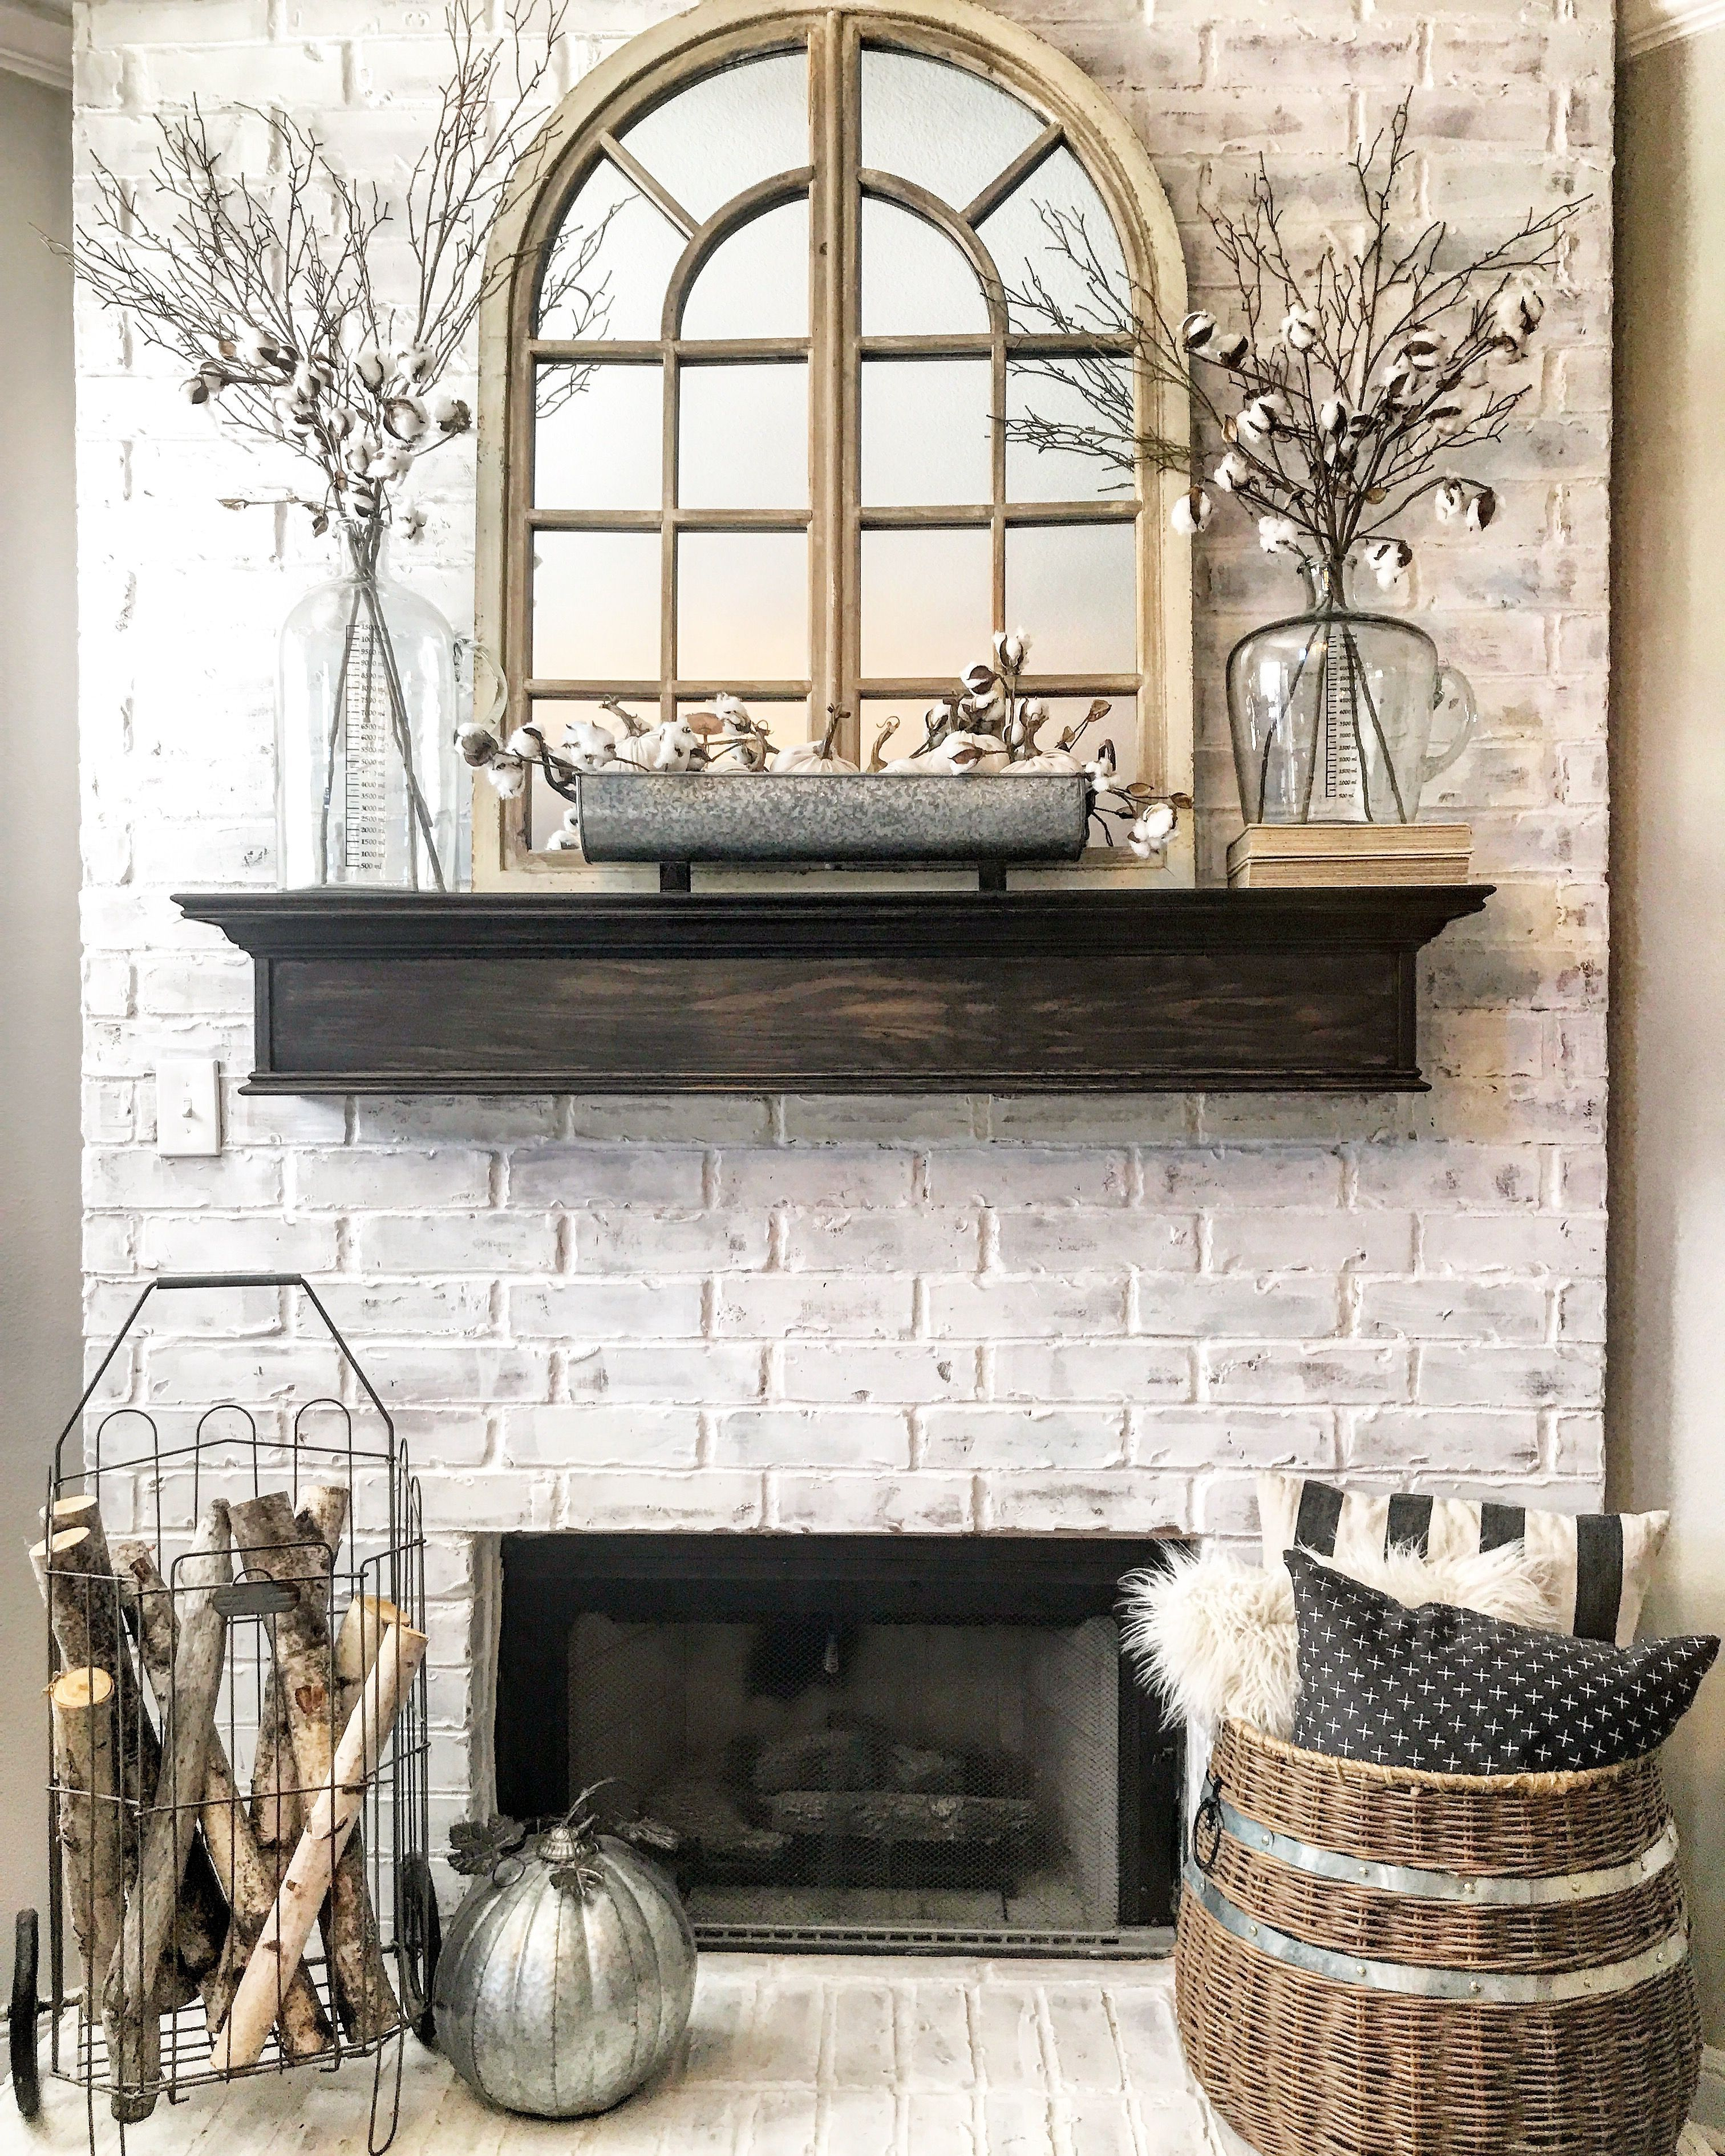 Simple fall farmhouse style mantle by Whimsy